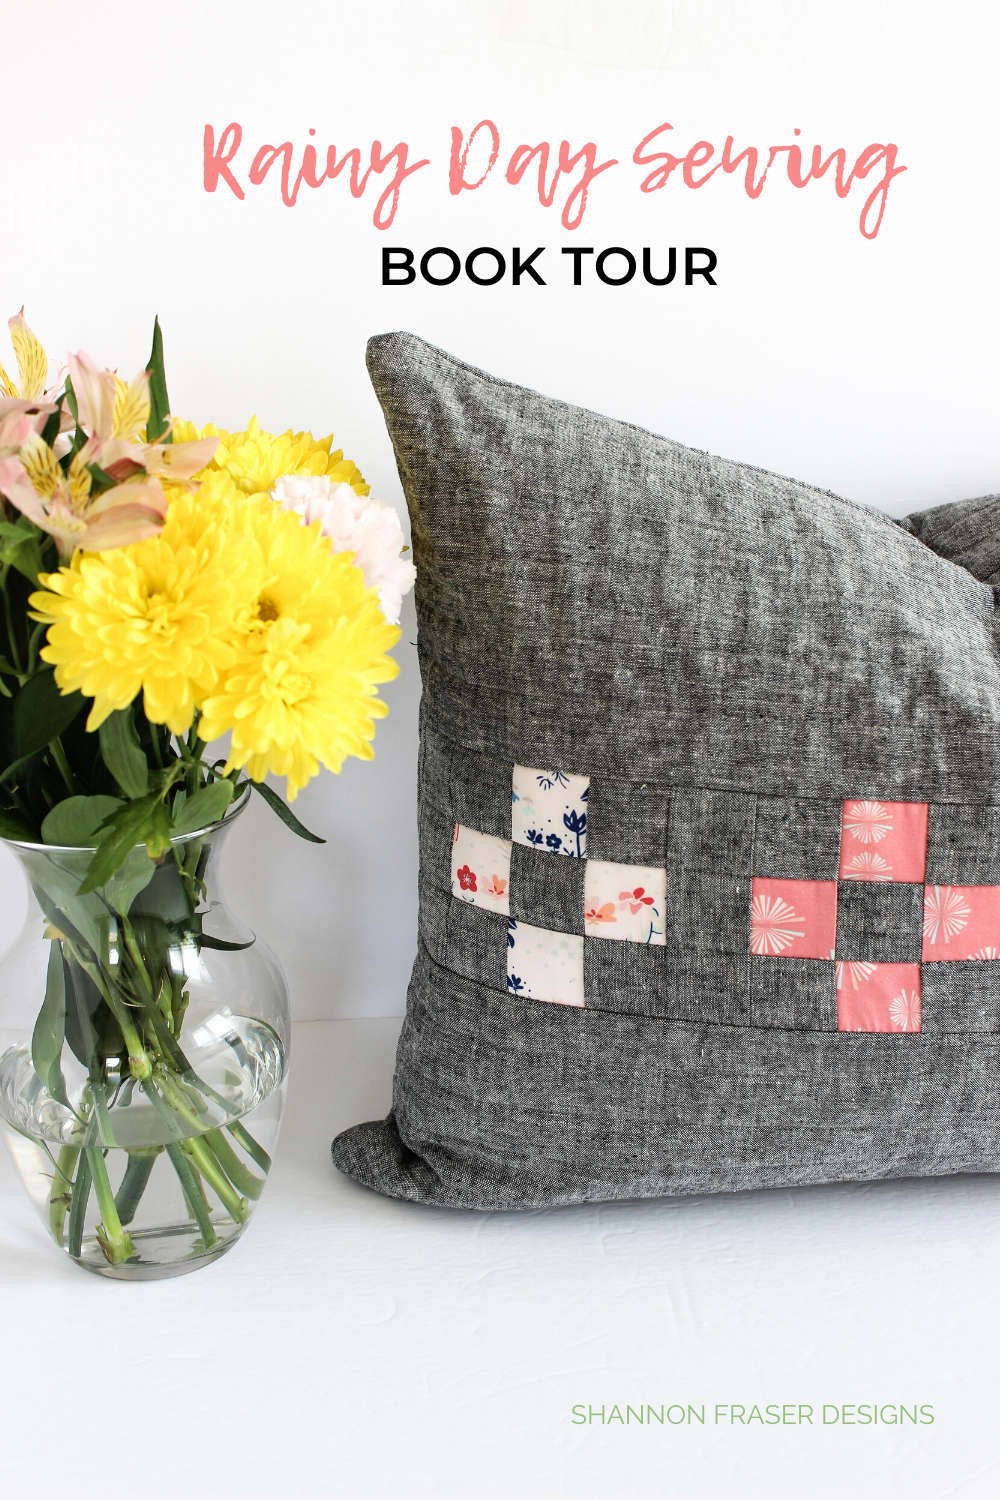 Gray linen + Paperie fabric featured in Spotlight quilted pillow with vase of yellow flowers | Rainy Day Sewing Book Tour | Shannon Fraser Designs #homedecor